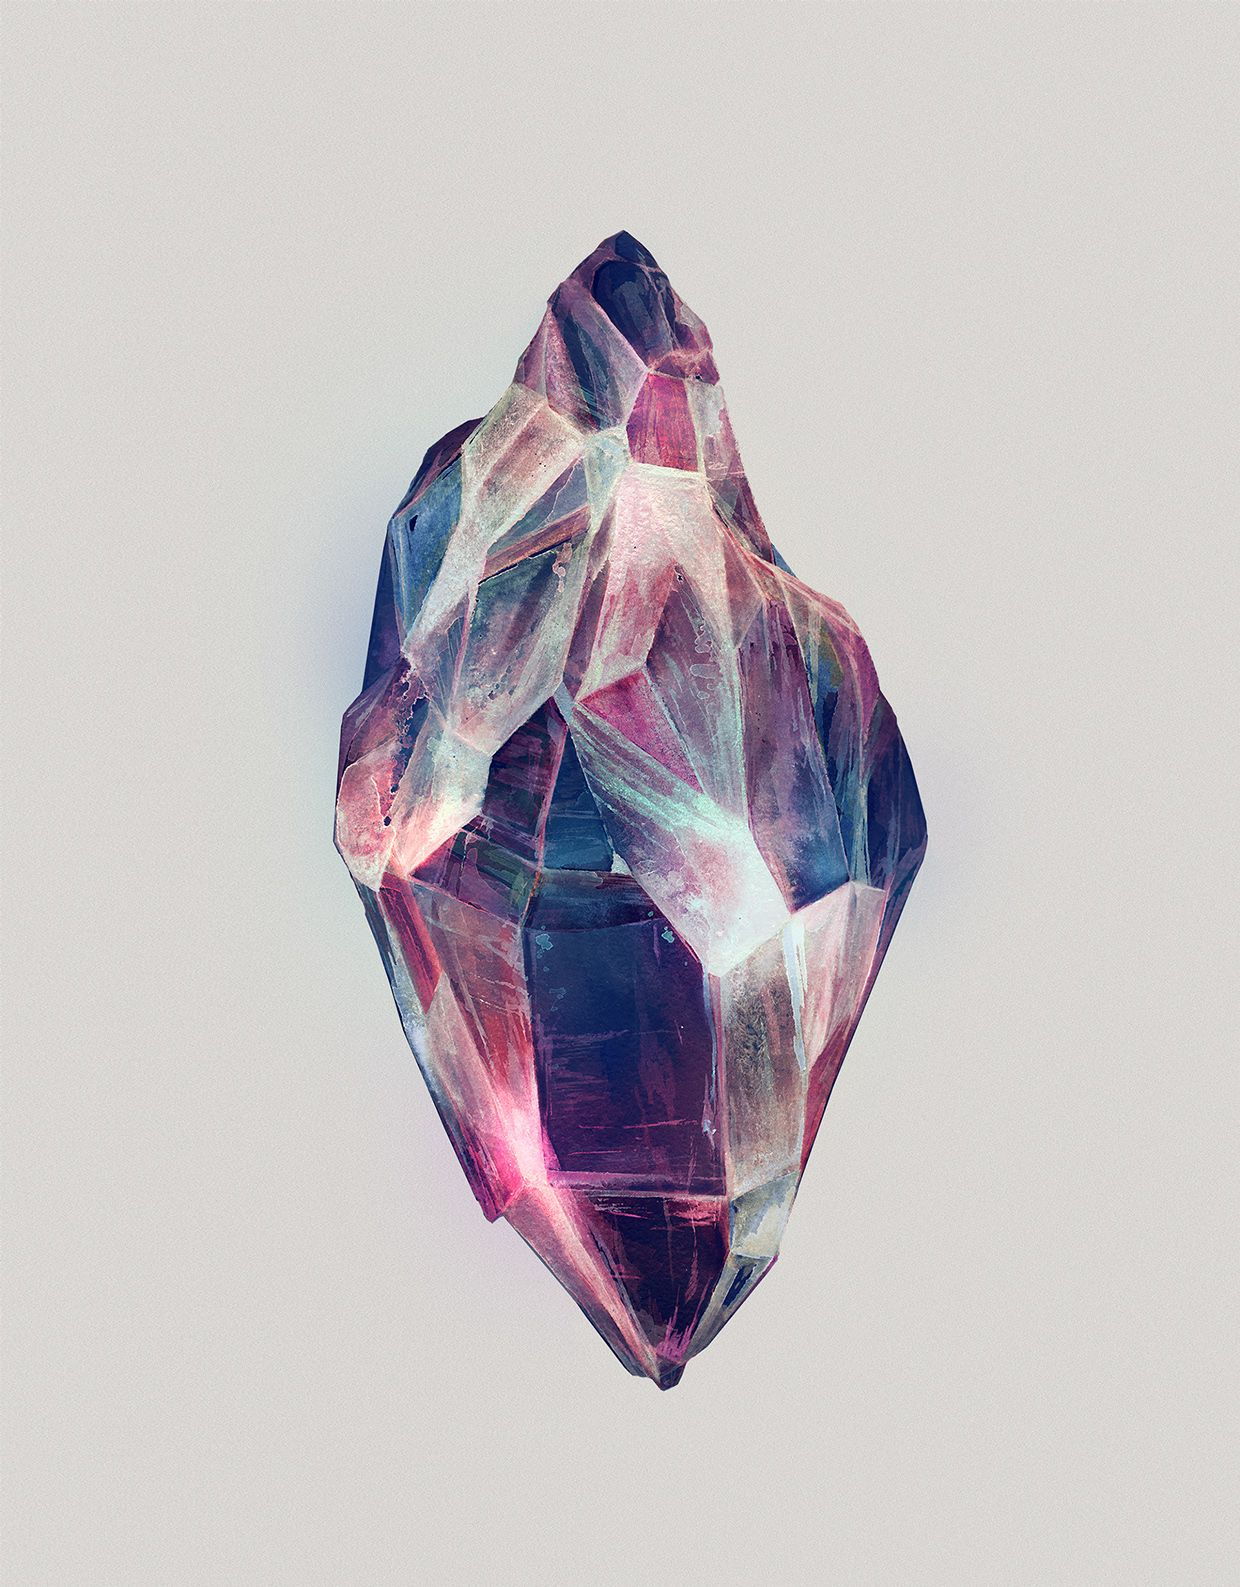 Mineral Admiration: Watercolor Paintings of Crystals by Karina Eibatova  http://www.thisiscolossal.com/2014/09/mineral-admiration-watercolor-paintings-of-crystals-by-karina-eibatova/